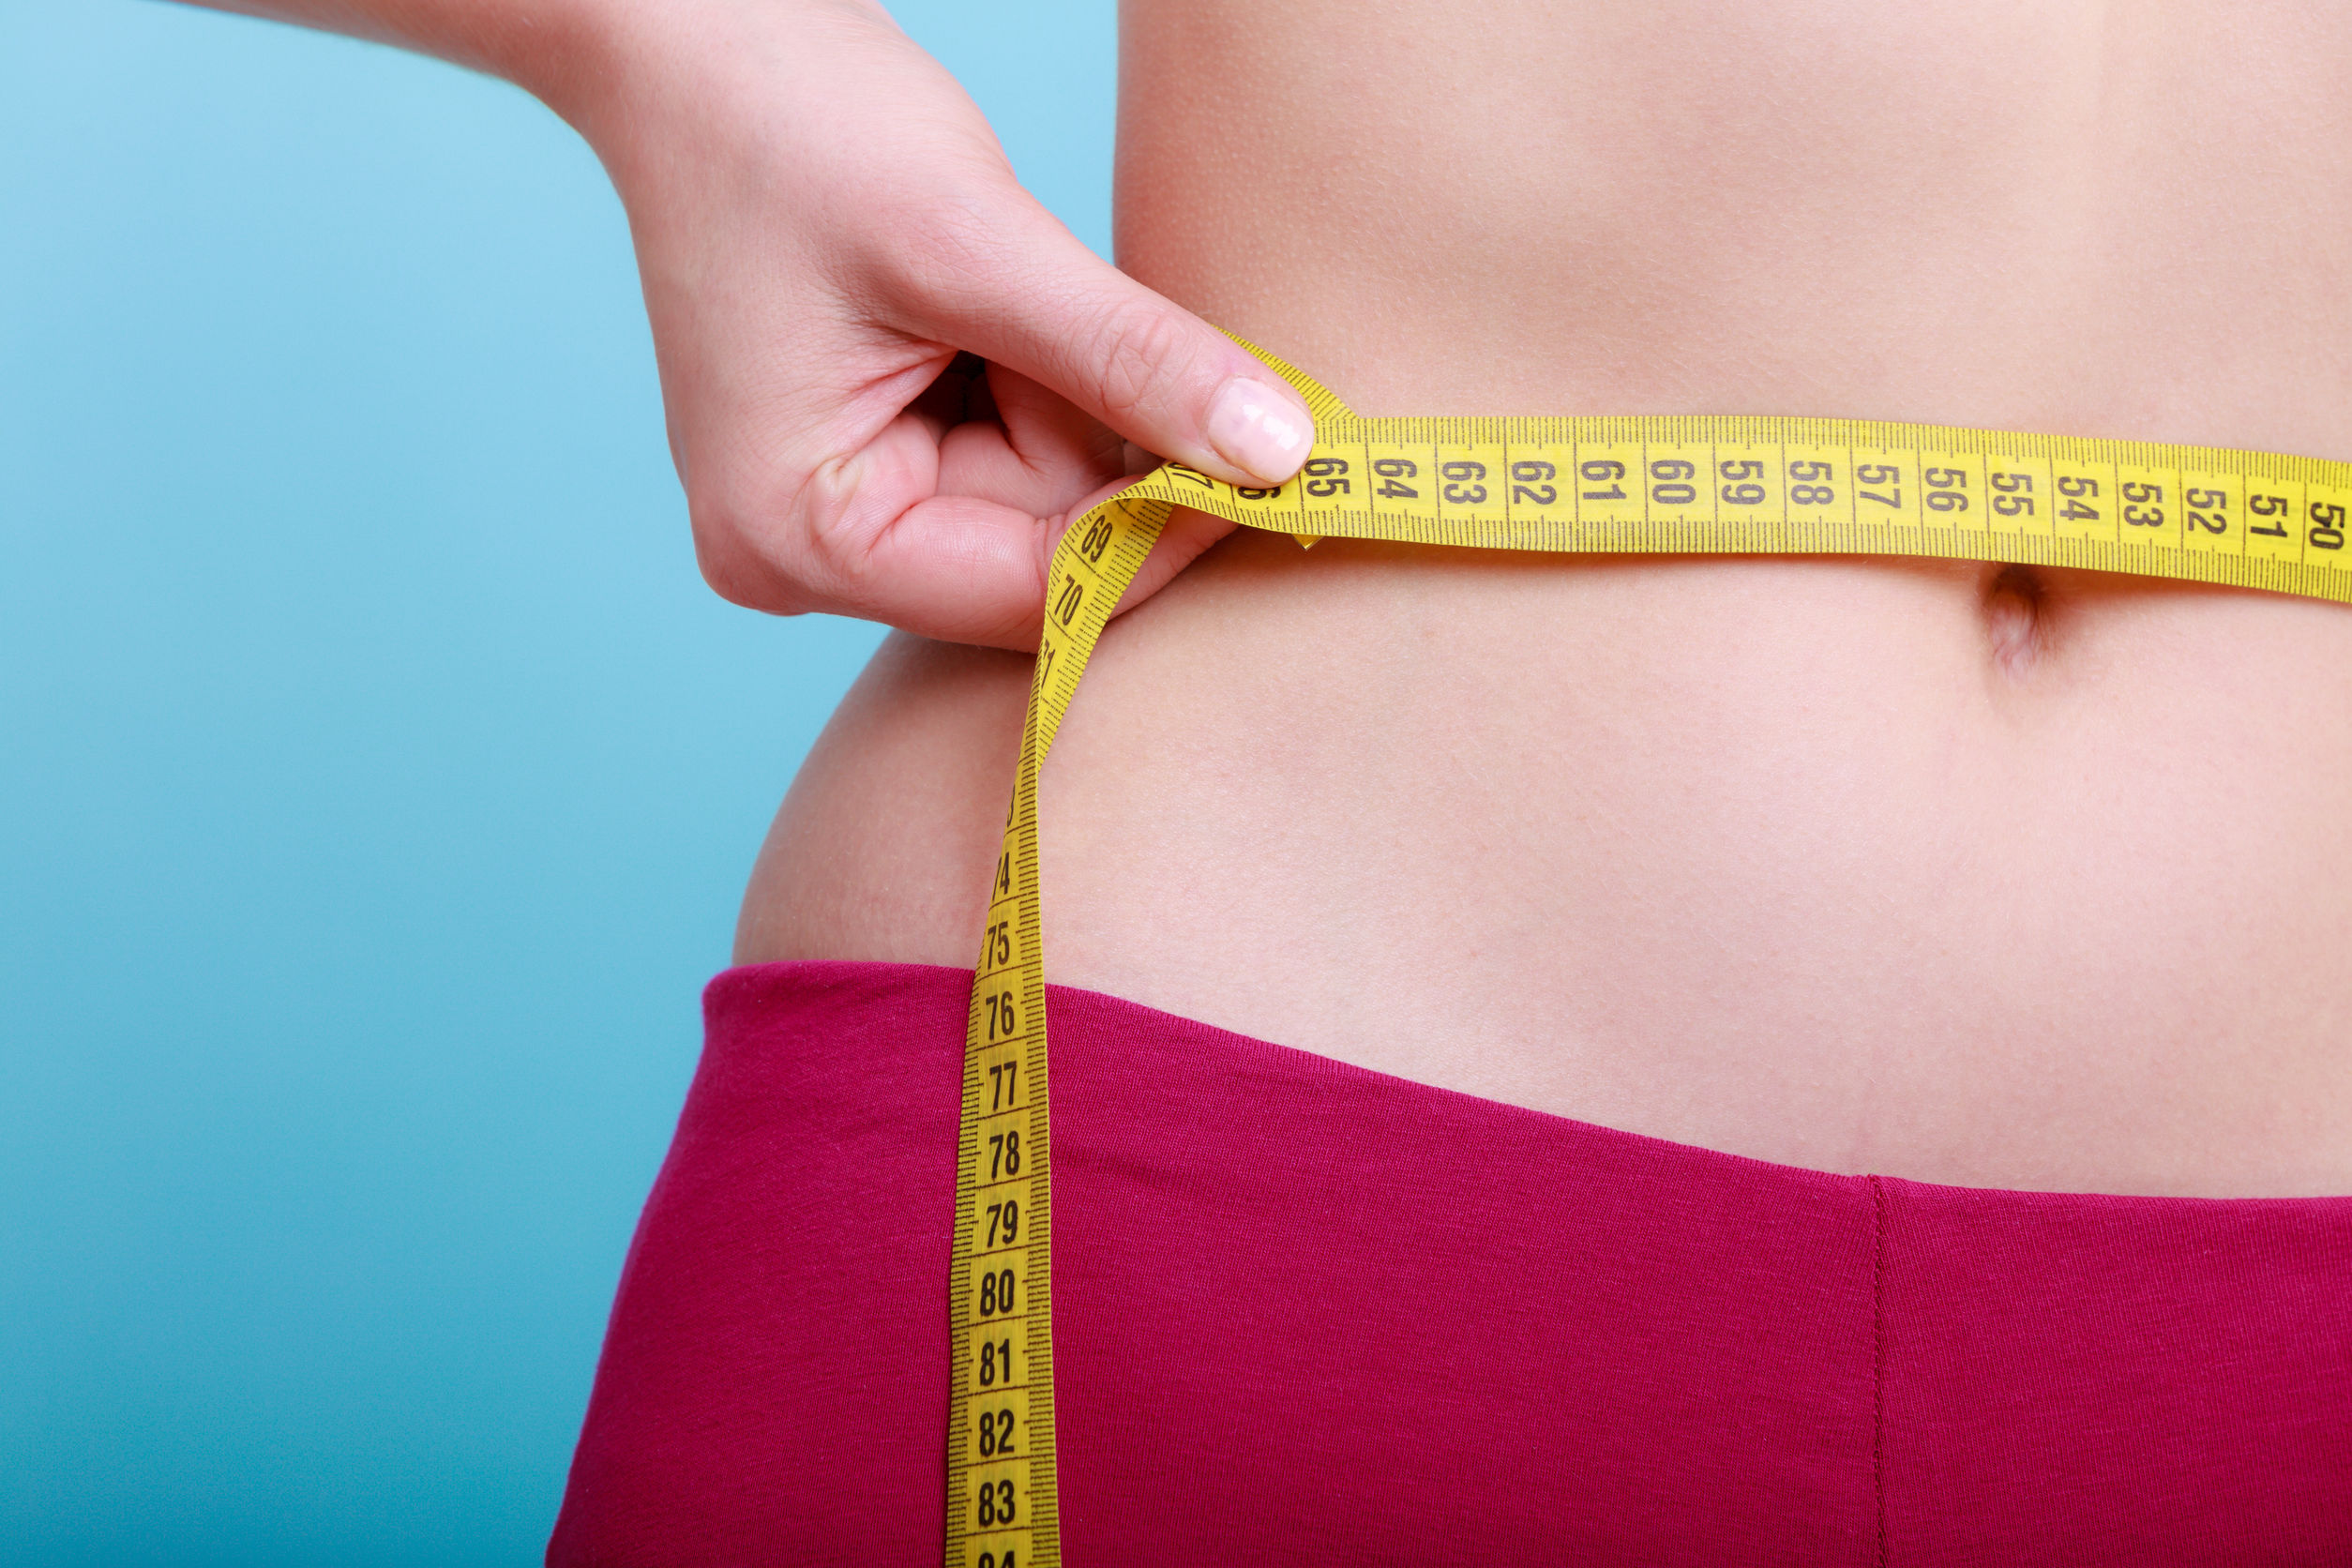 measuring tape on waist weight loss program without strict diet and exercise life changing program